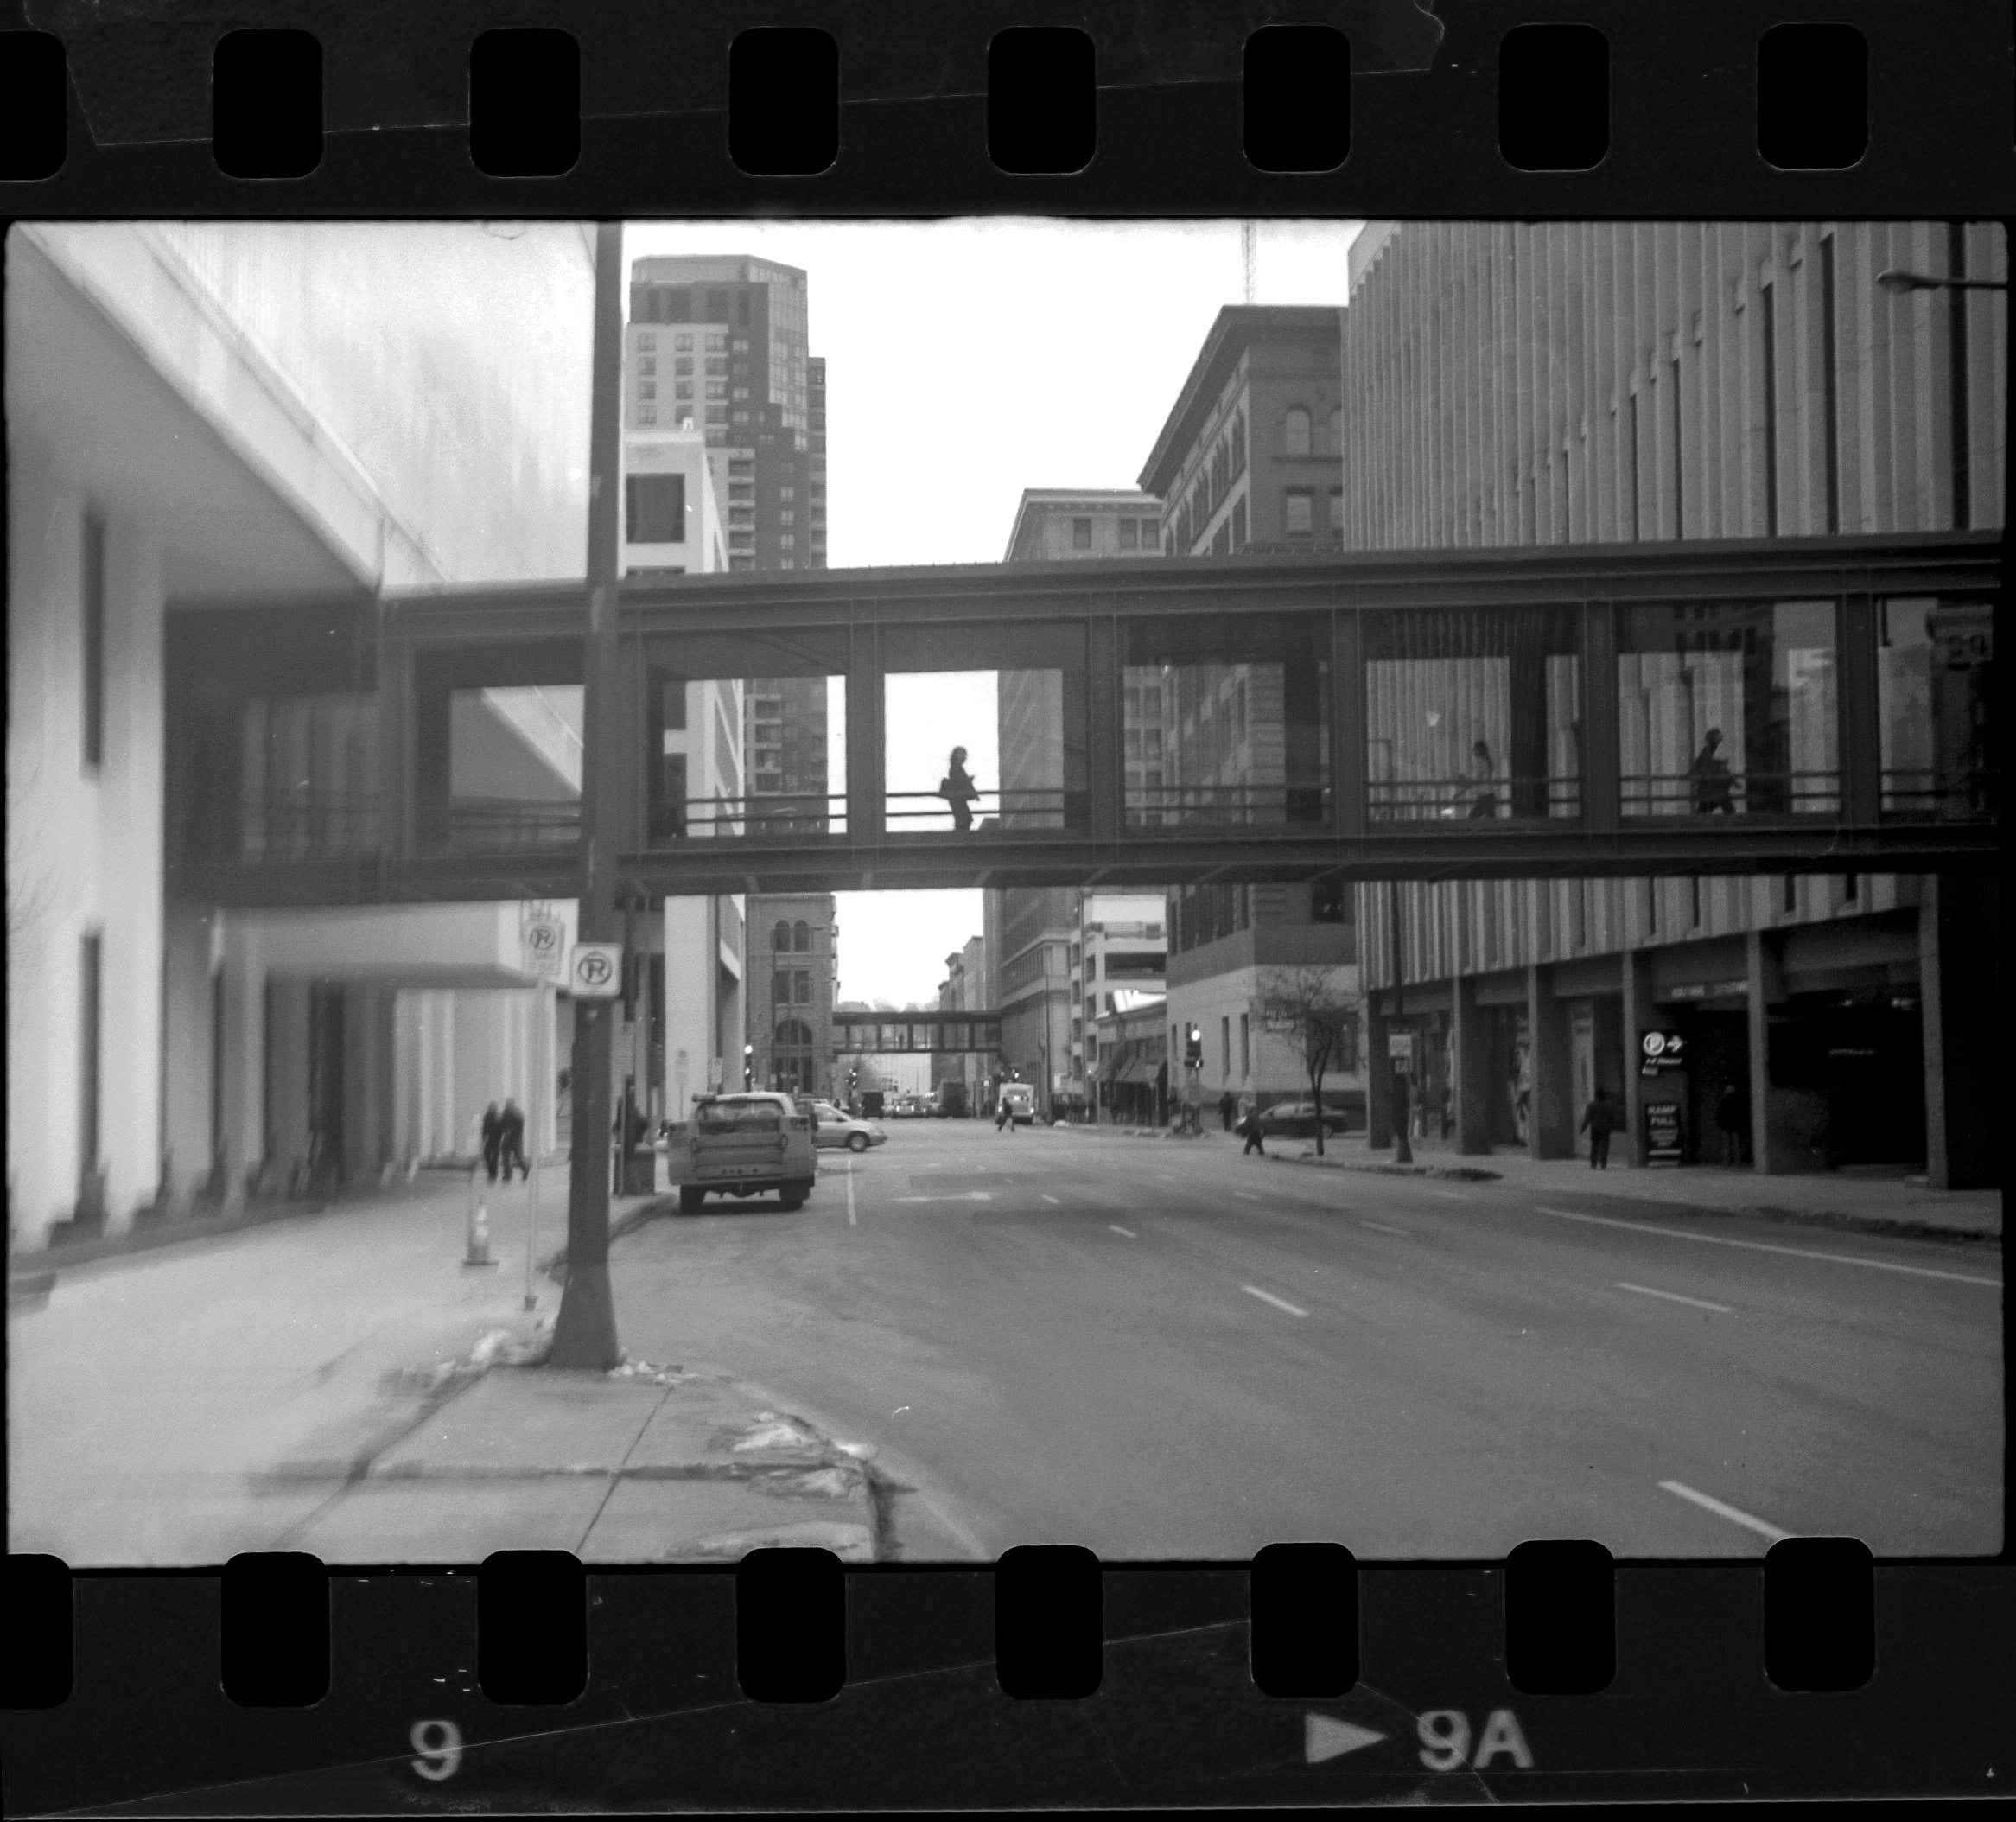 Over the last few weeks I've aquired a few vintage cameras, not as bookshelf pieces, but as tools to challenge me and change the way I am seeing and photographing. Here is a quick snap from a partial roll of film I ran through one of the new cameras today. Its amazing that a camera from 1933 still works just fine. I look forward to using these cameras more and I sure have missed the smell of fixer on my hands from developing the film.